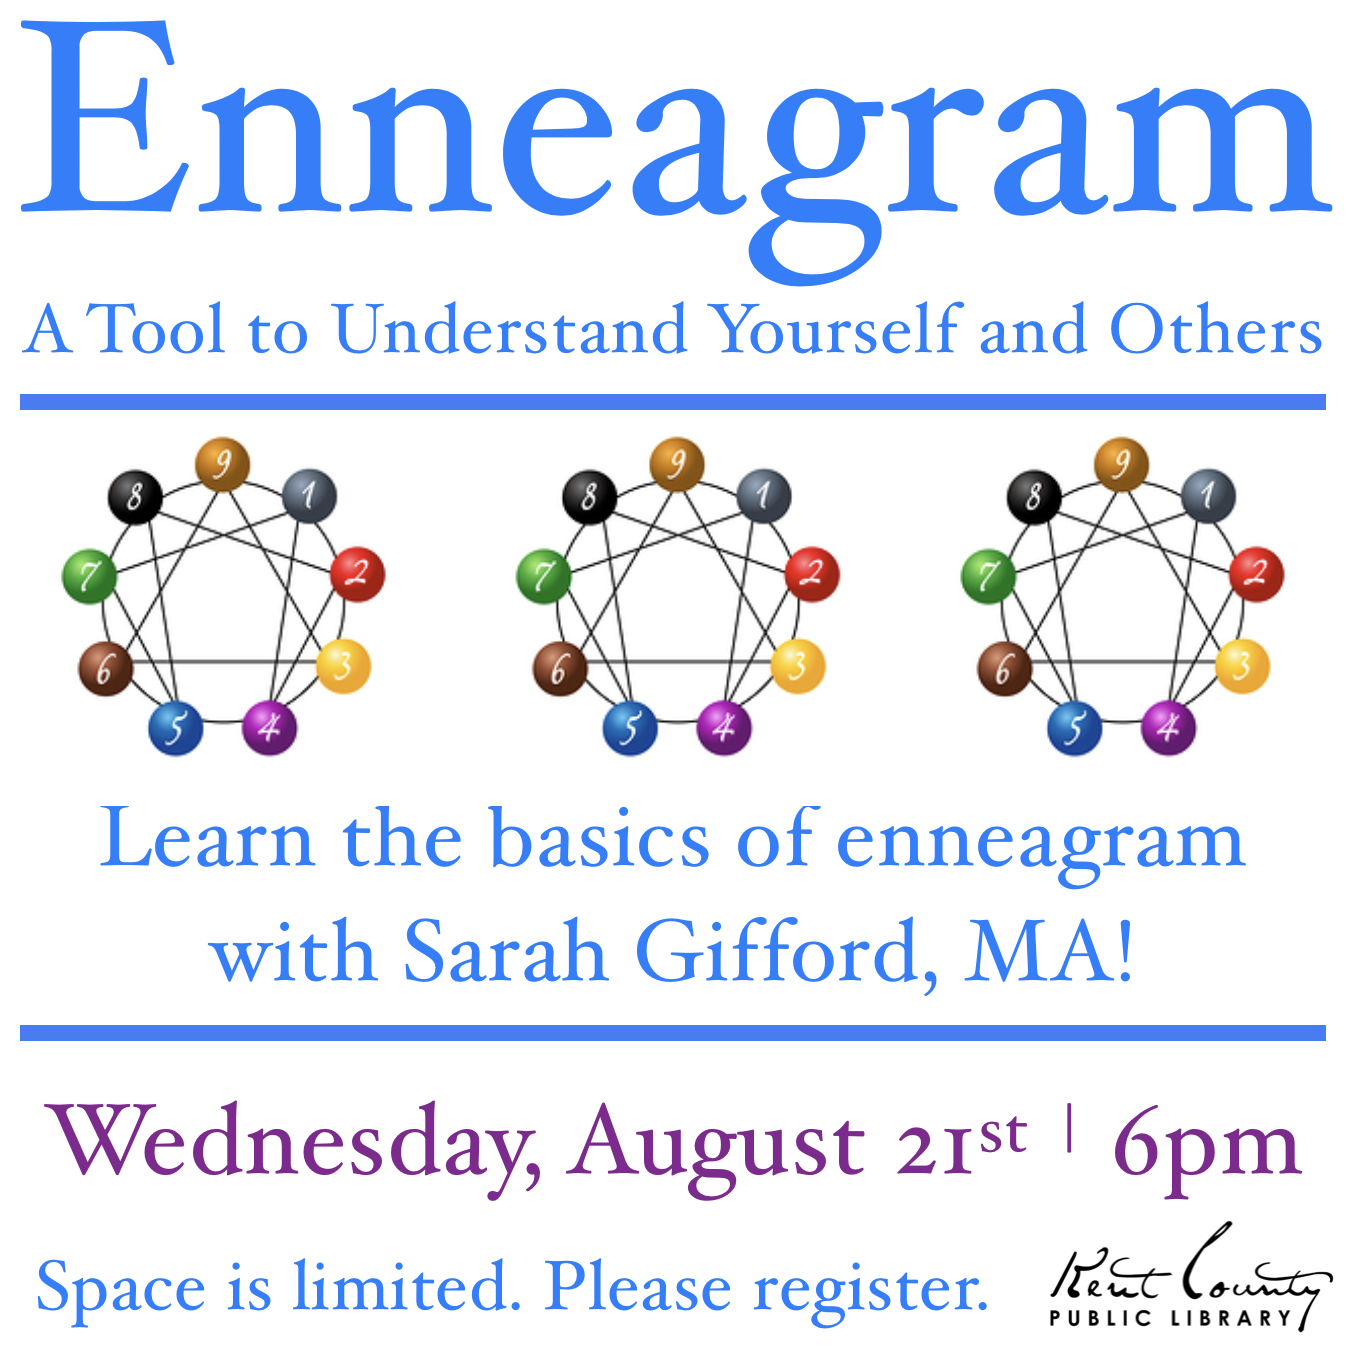 Enneagram: A Tool to Understand Yourself and Others